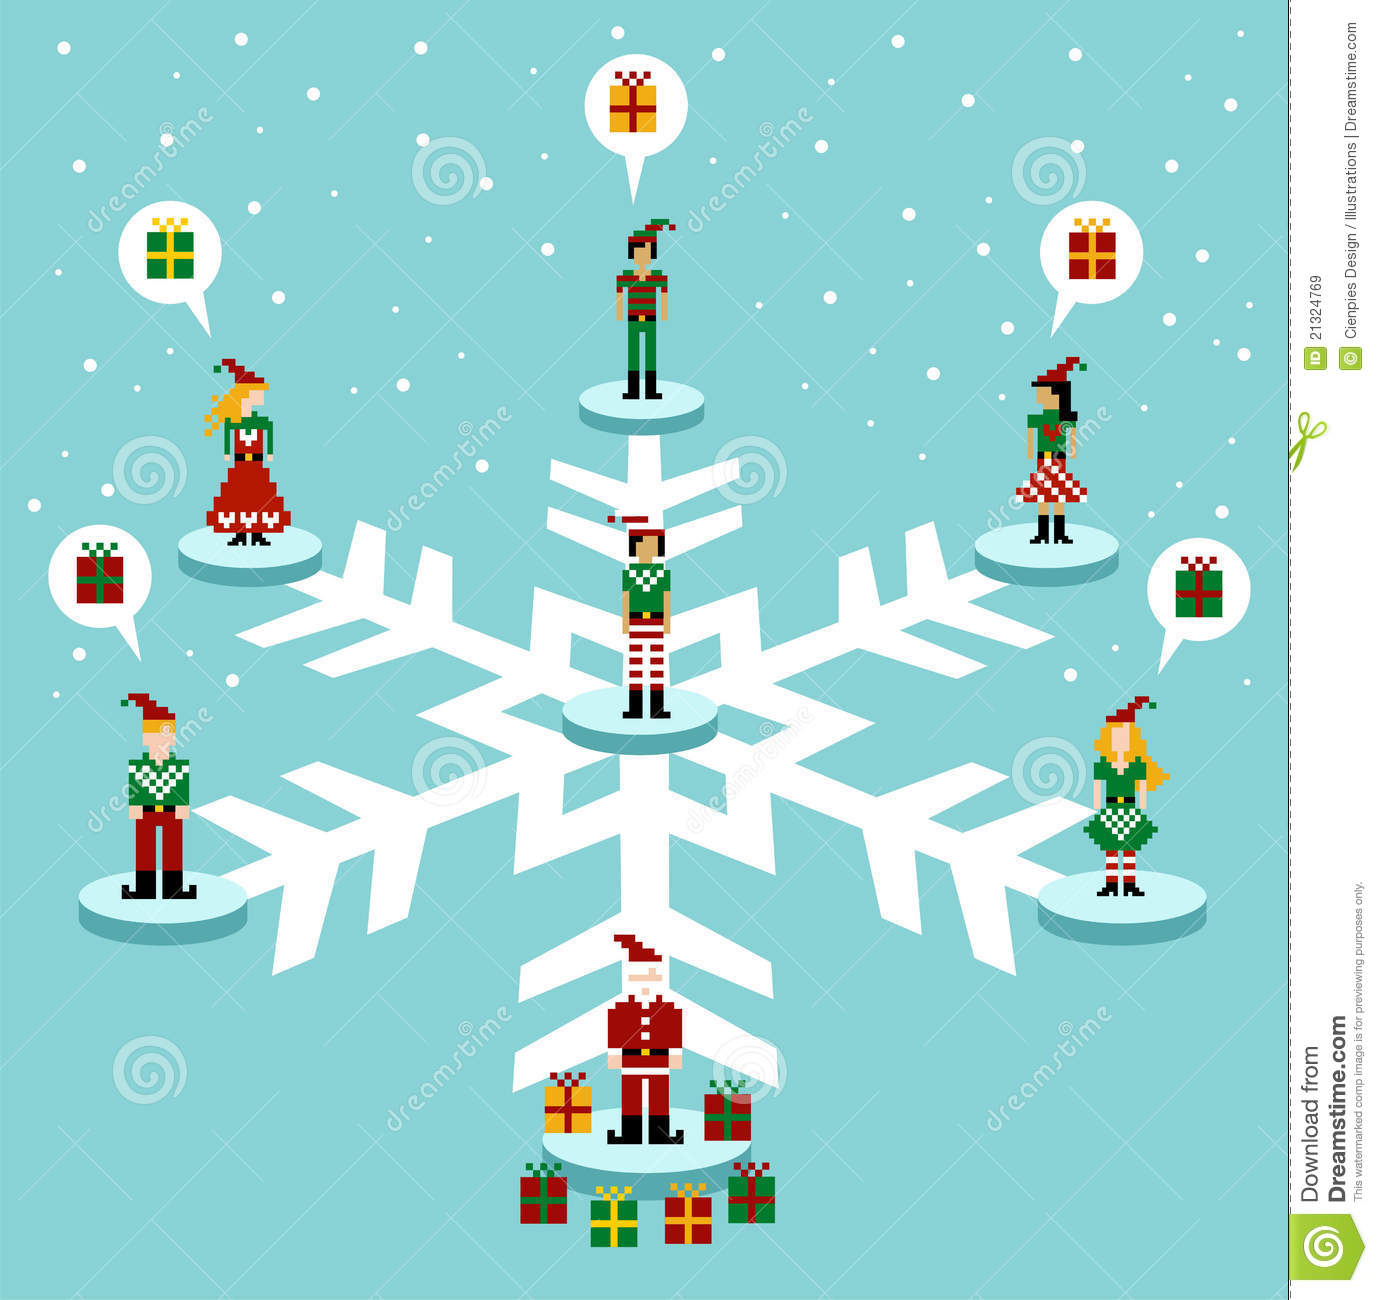 Christmas Social Media Network Royalty Free Stock Images